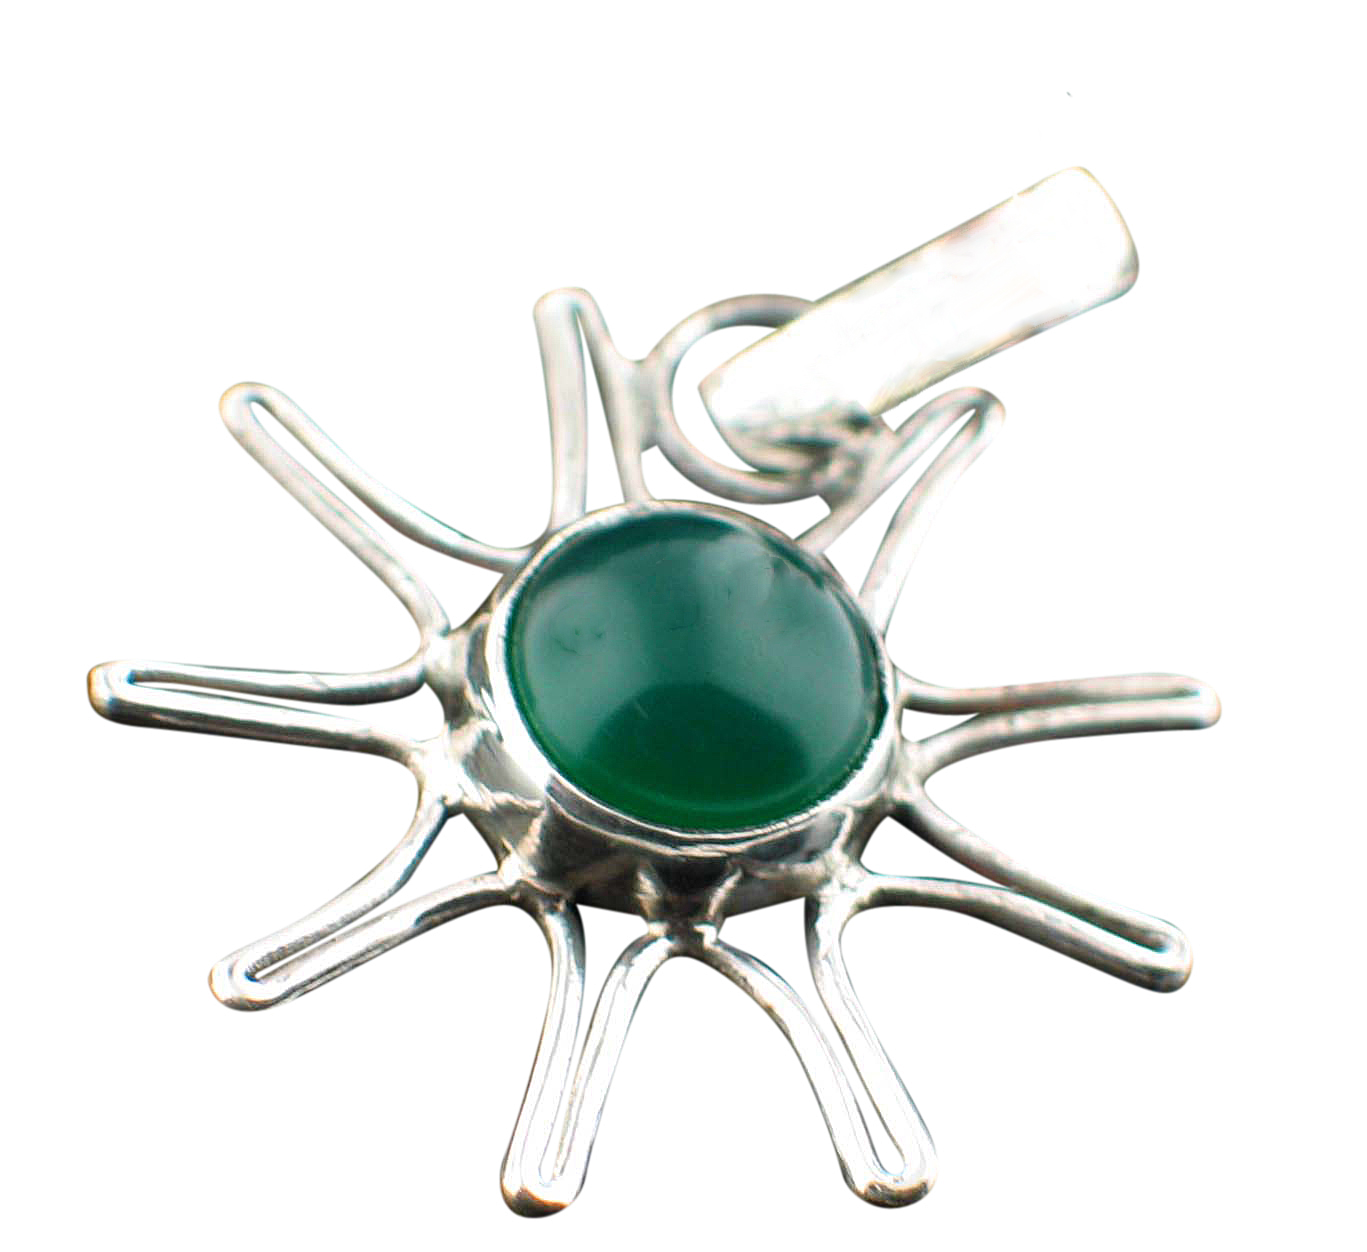 SKU 13800 - a Onyx pendants Jewelry Design image